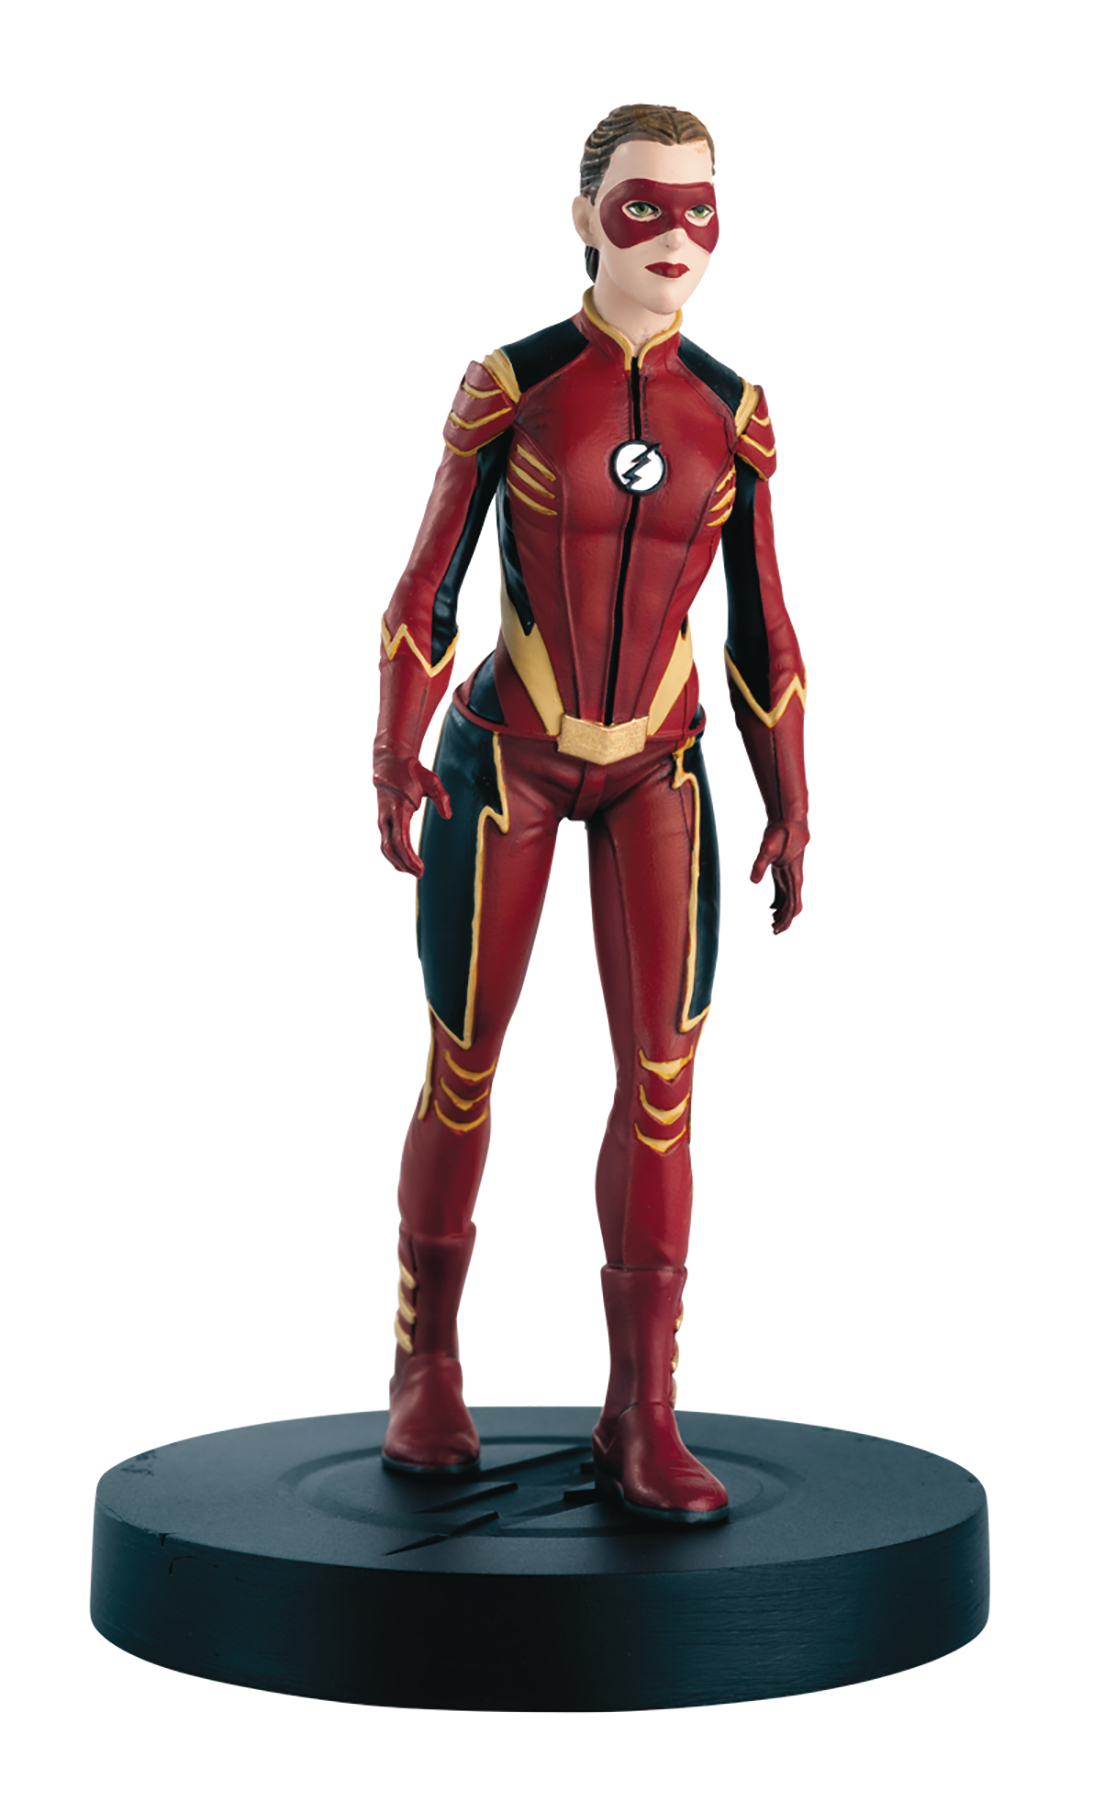 DC CW FLASH FIG COLL #5 JESSE QUICK